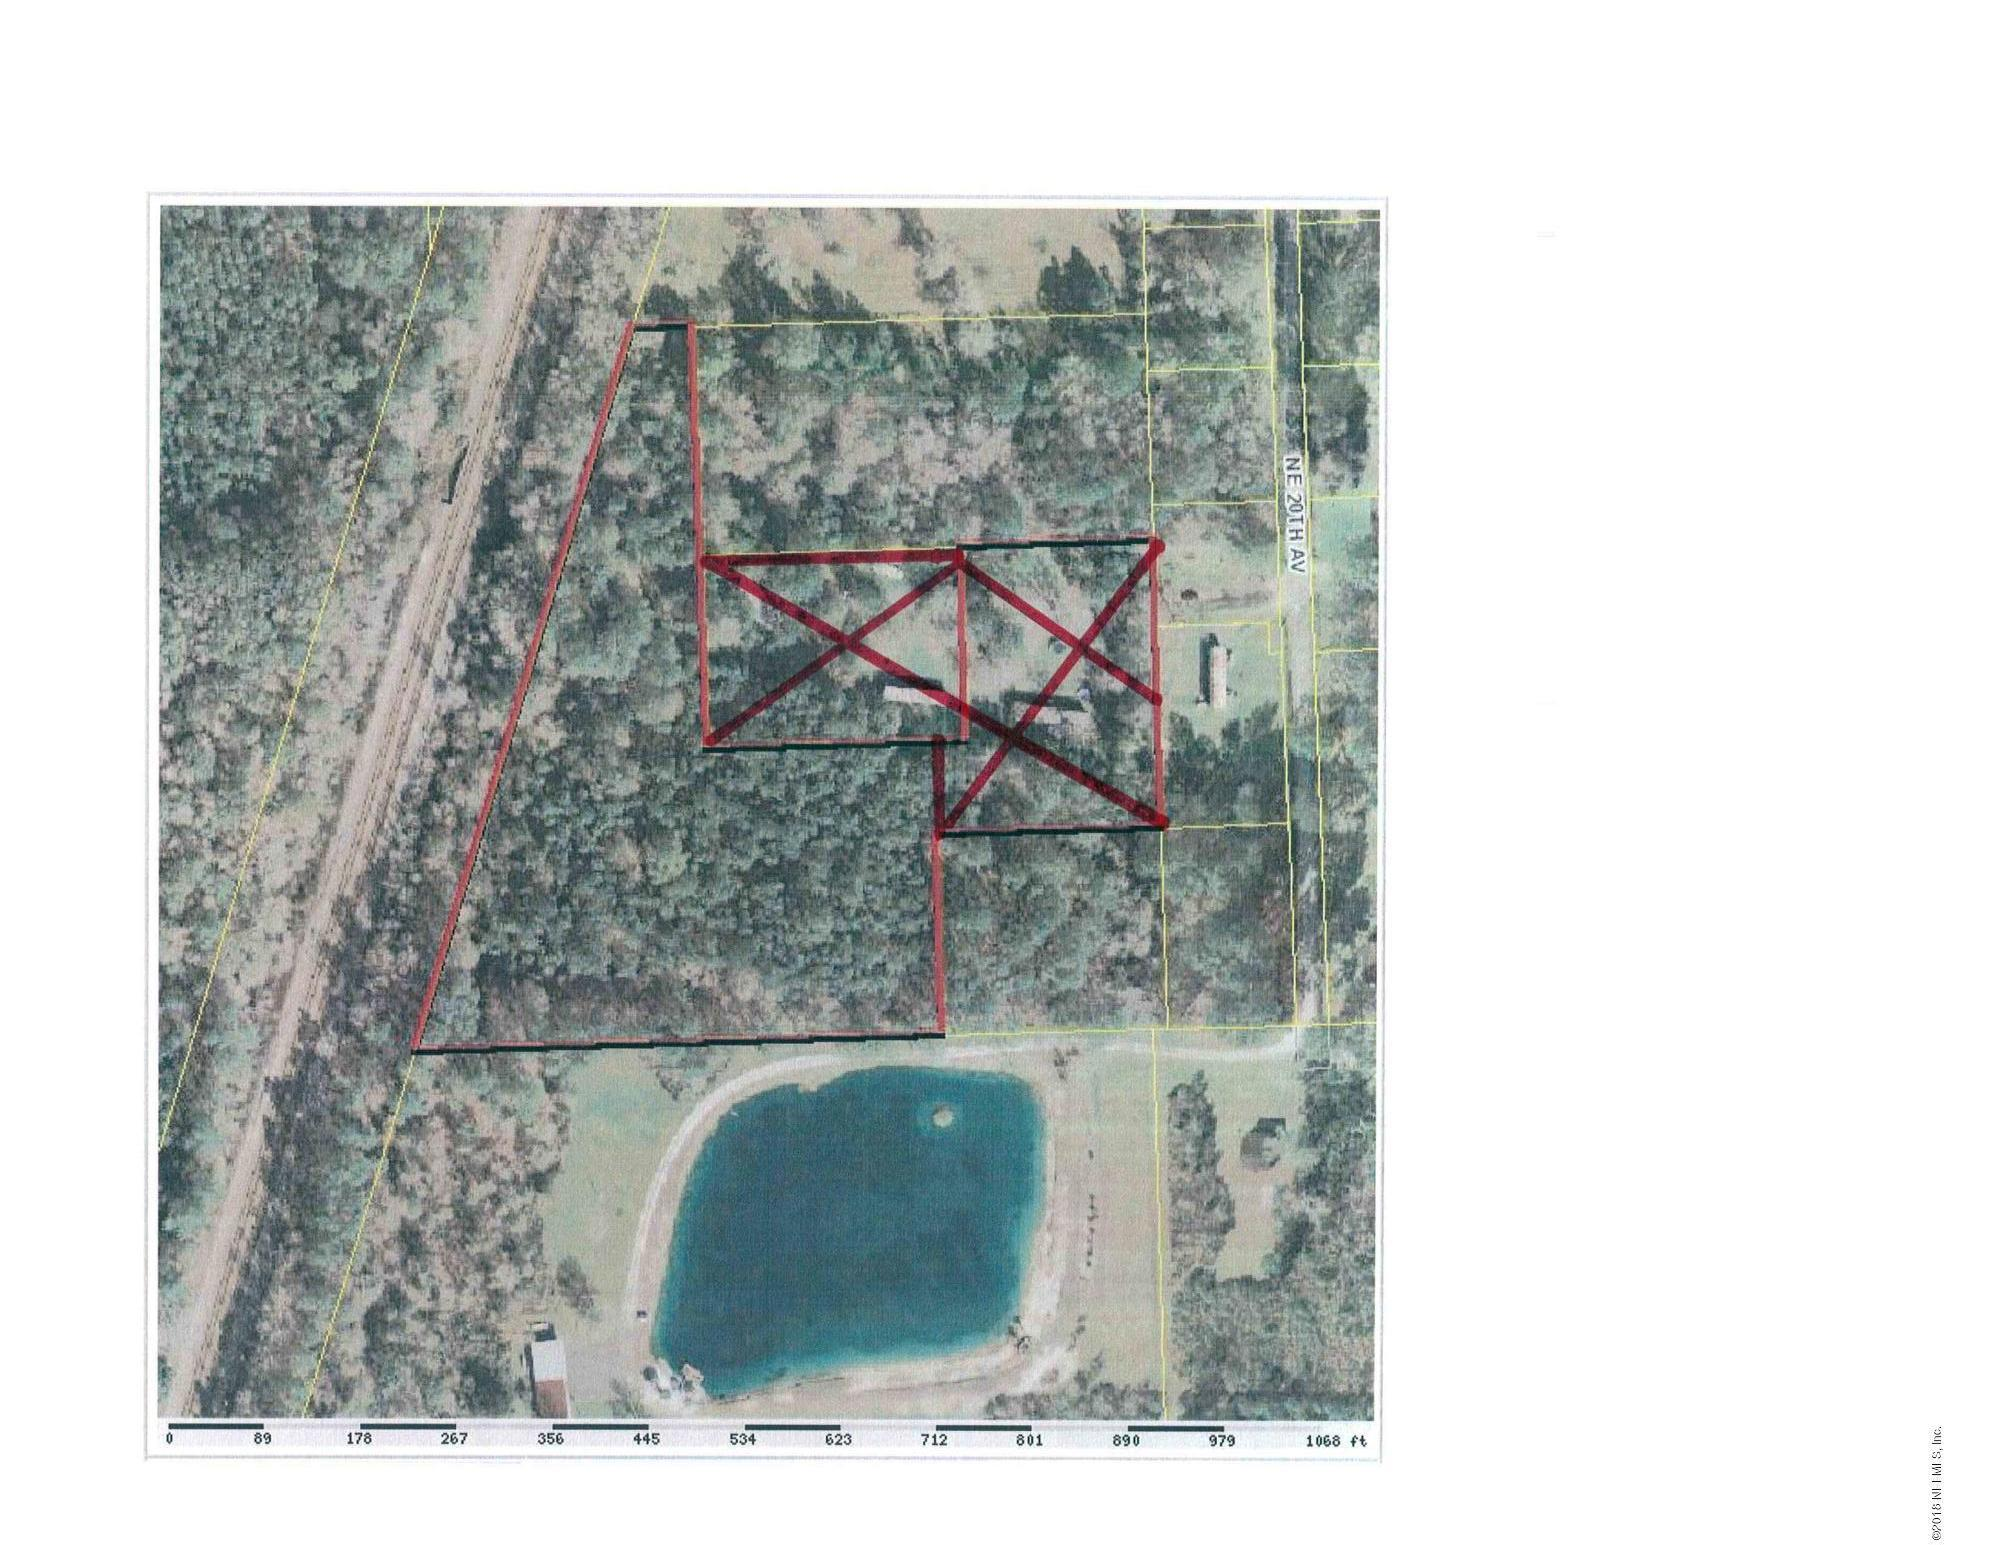 Vacant land For sale – – – – Price $30,000 – 132568